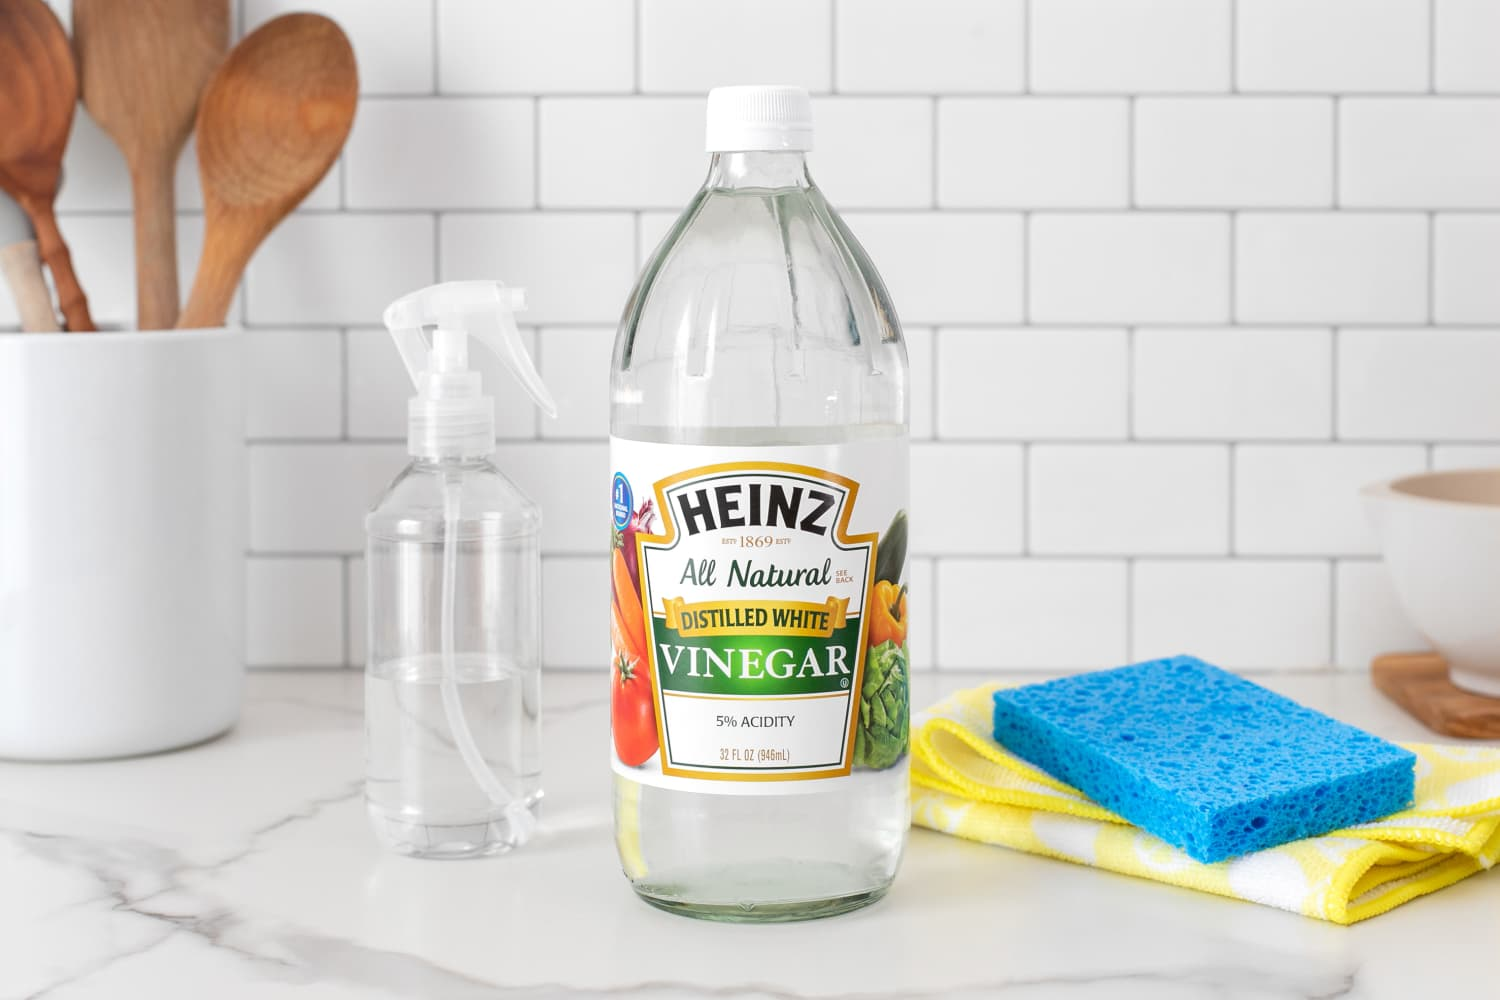 5 Things You Should Never Clean with Vinegar